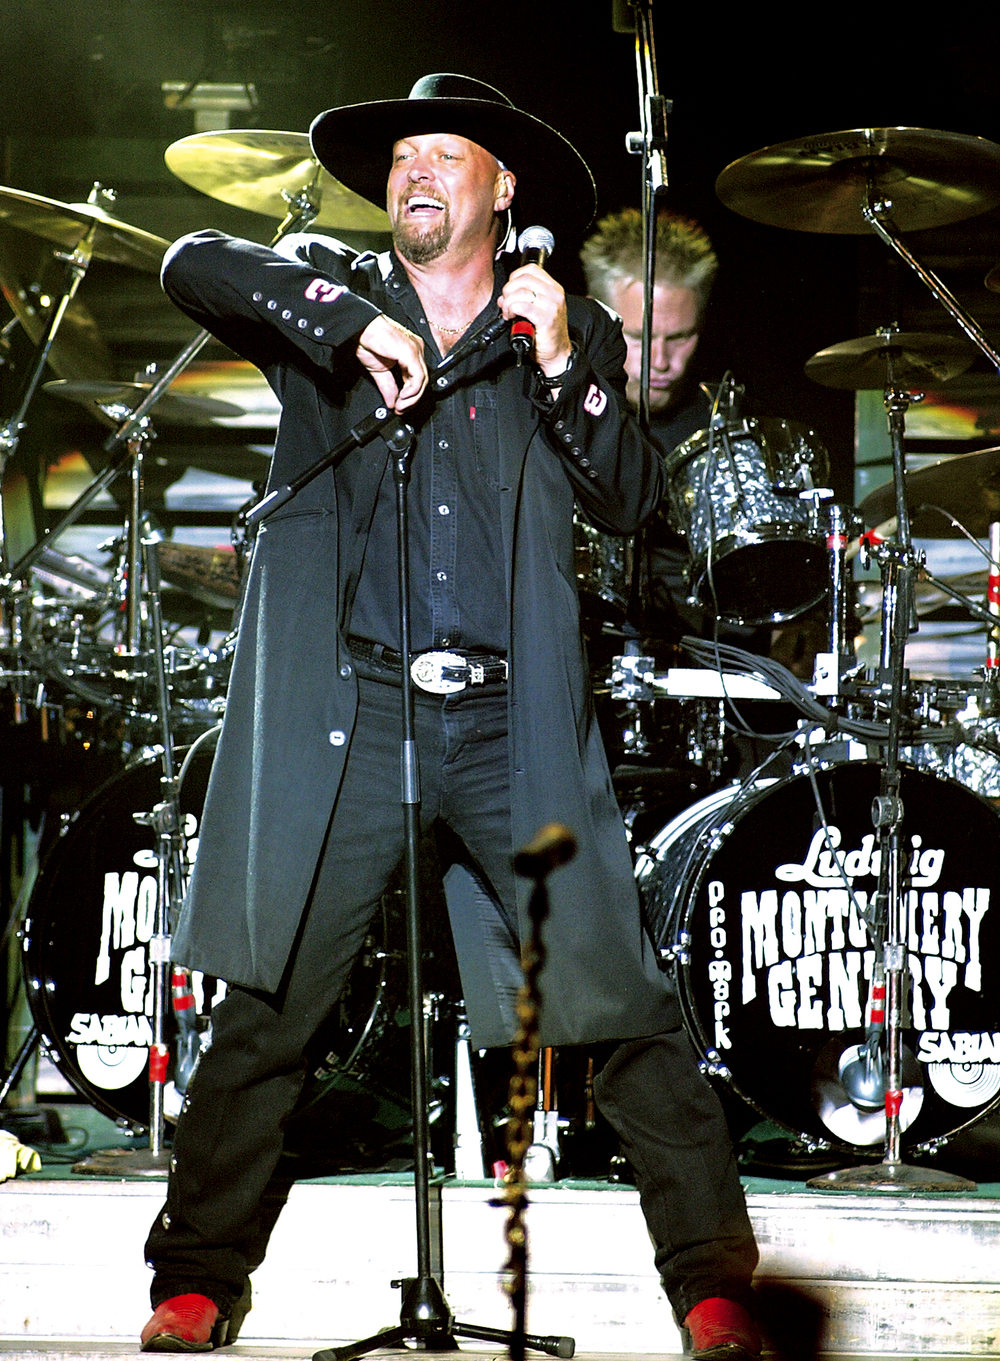 2003: Eddie Montgomery of  the country music duo Montgomery Gentry.